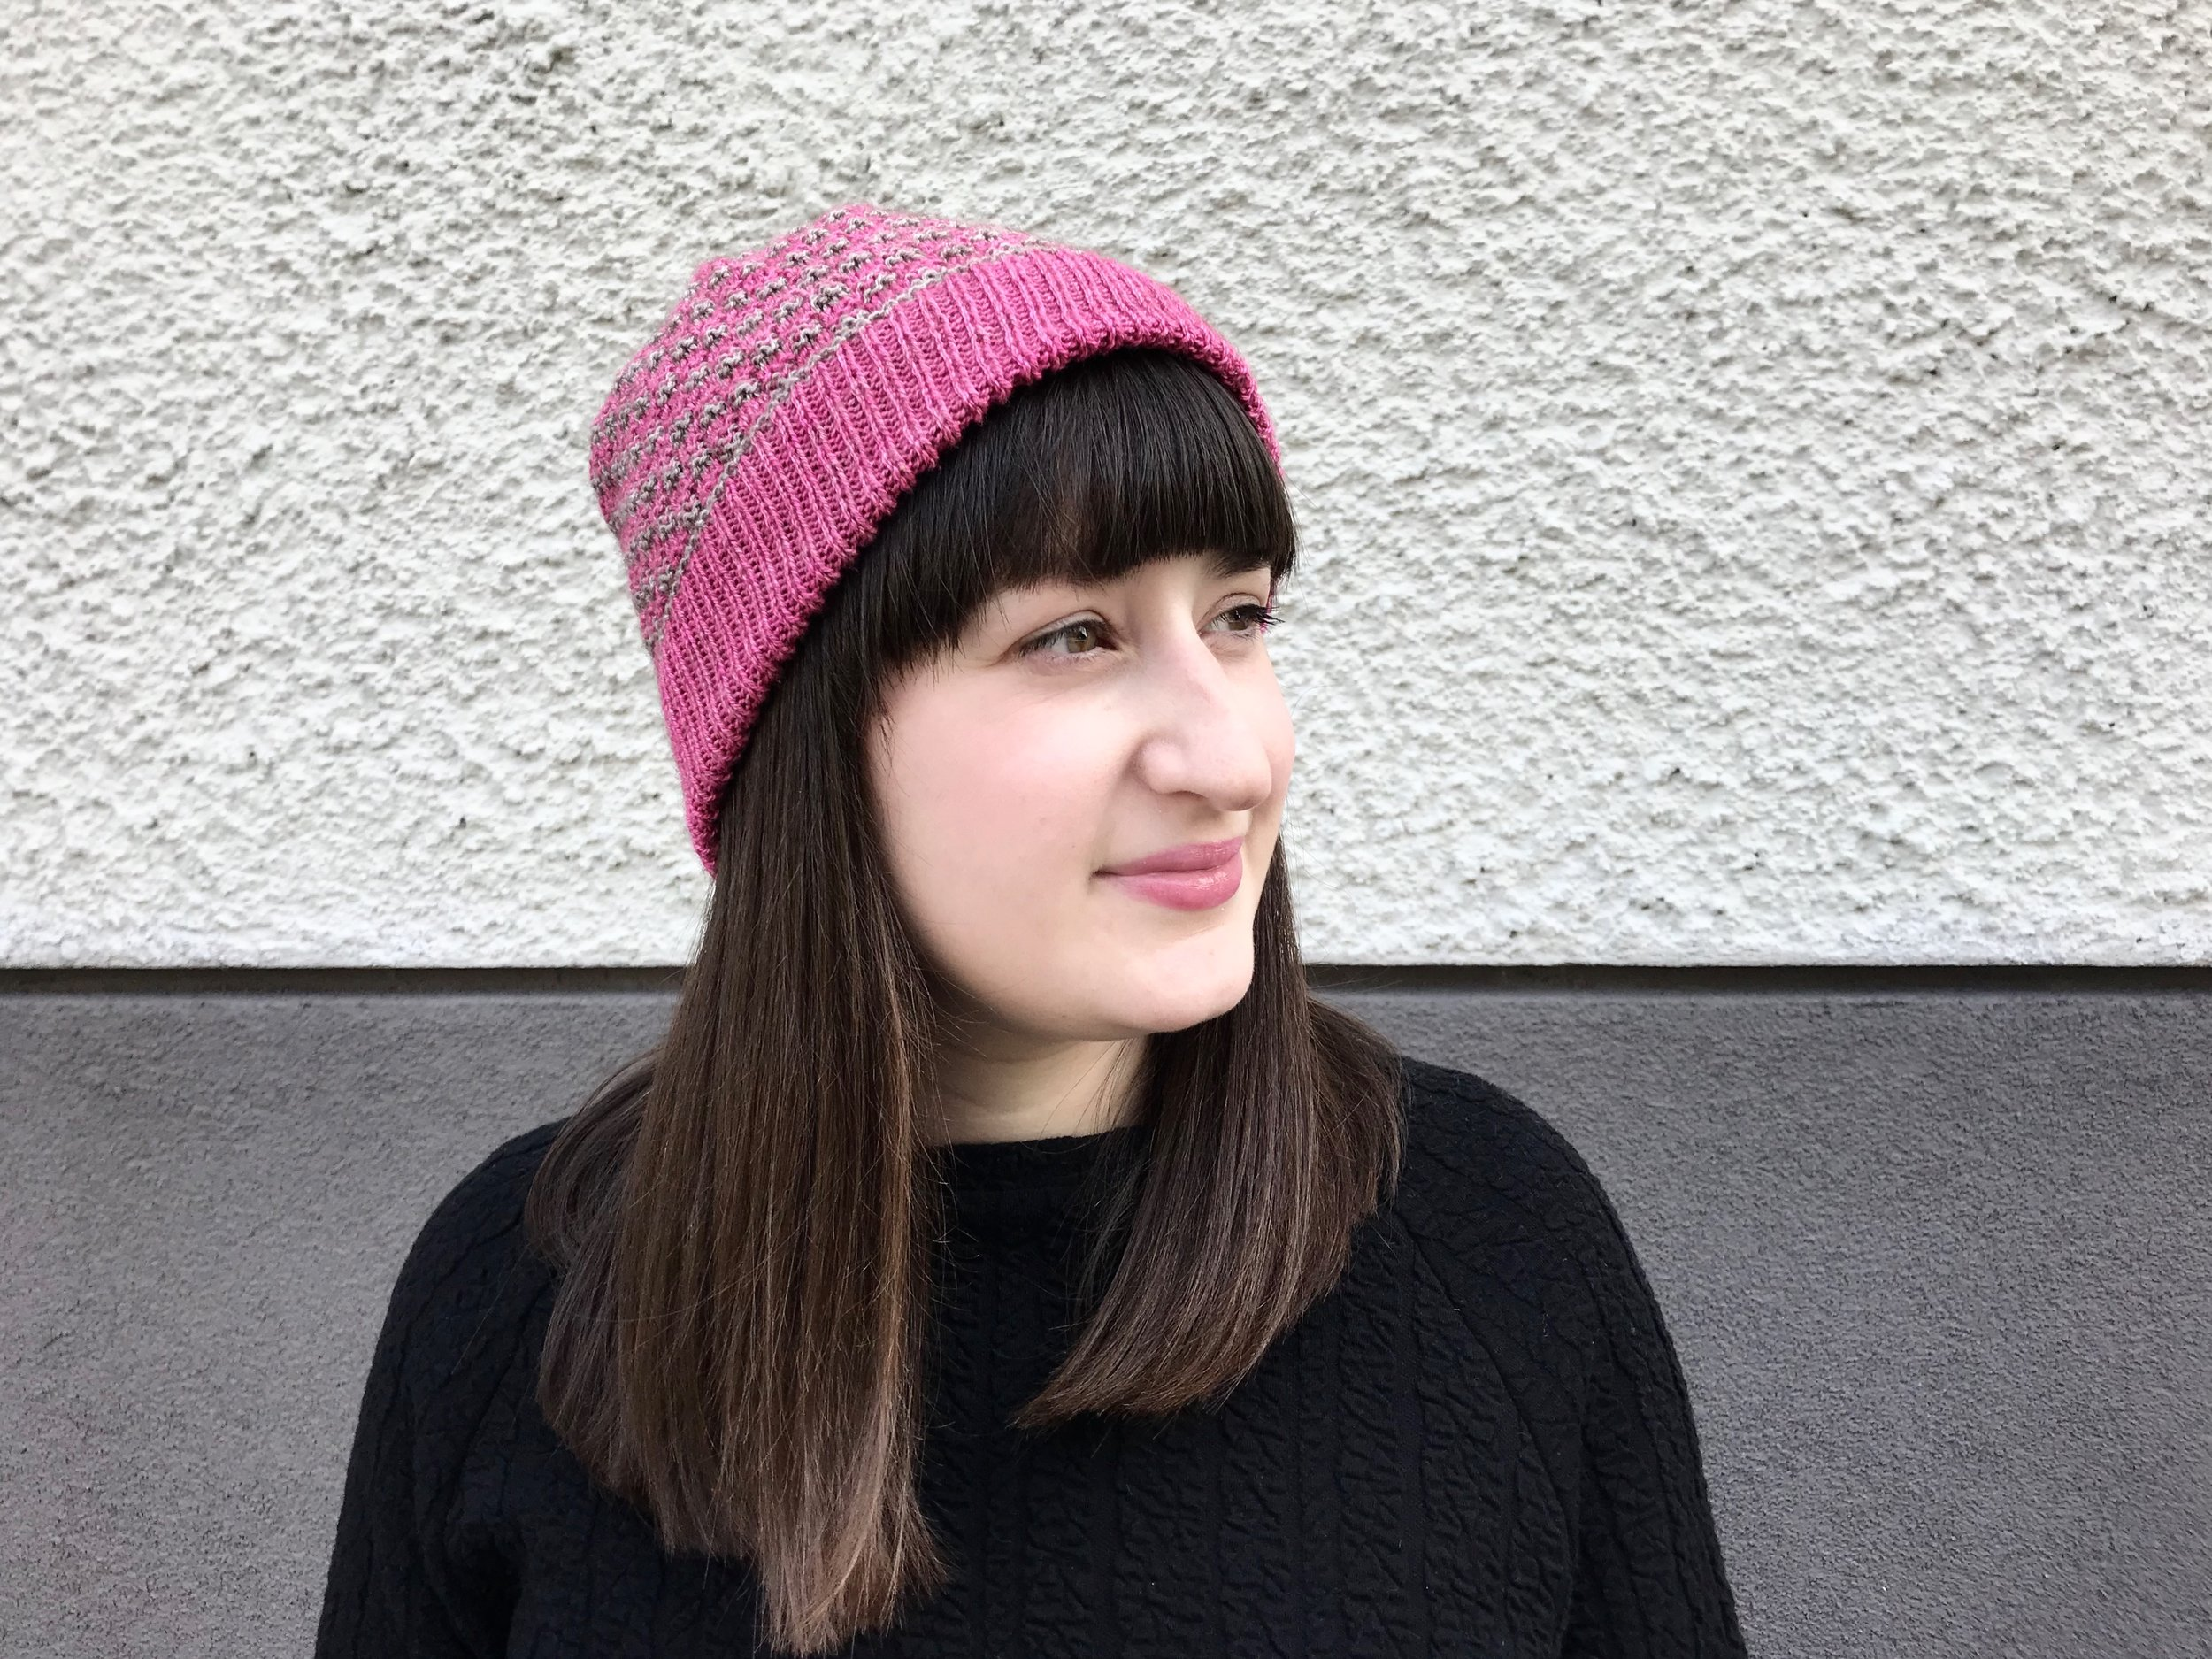 Fiona Alice is a knitting designer and the author of 'Take Heart: A Transatlantic Knitting Journey'.